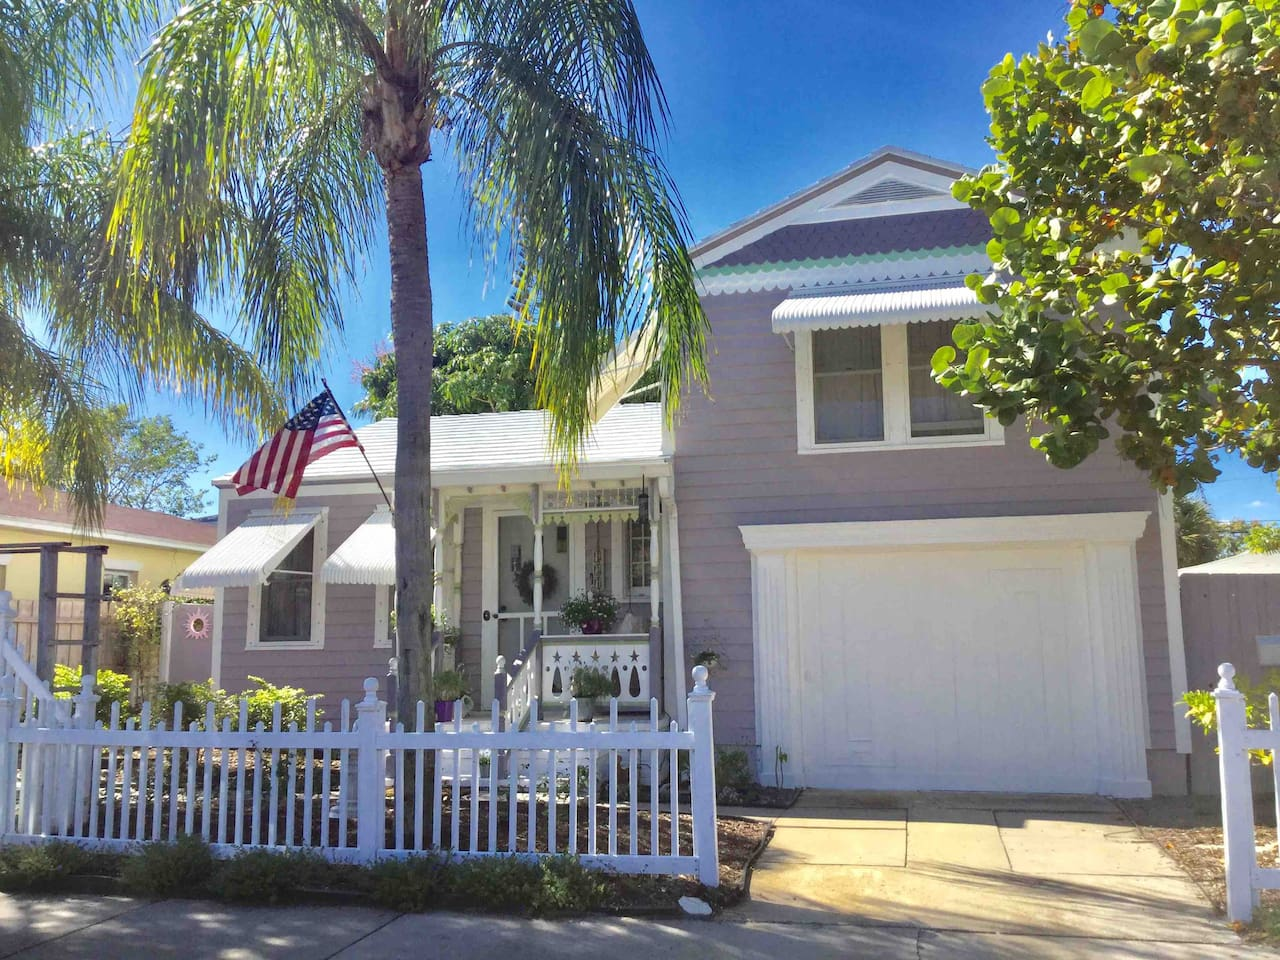 DOWNTOWN LAVENDER HOUSE EXTERIOR  YOUR 1 BEDROOM PRIVATE COTTAGE IS PERFECT FOR A ROMANTIC WEEKEND BEACH GETAWAY SEASONAL RENTAL OR BUSINESS TRAVEL Your accommodations are through the garden gate on the right